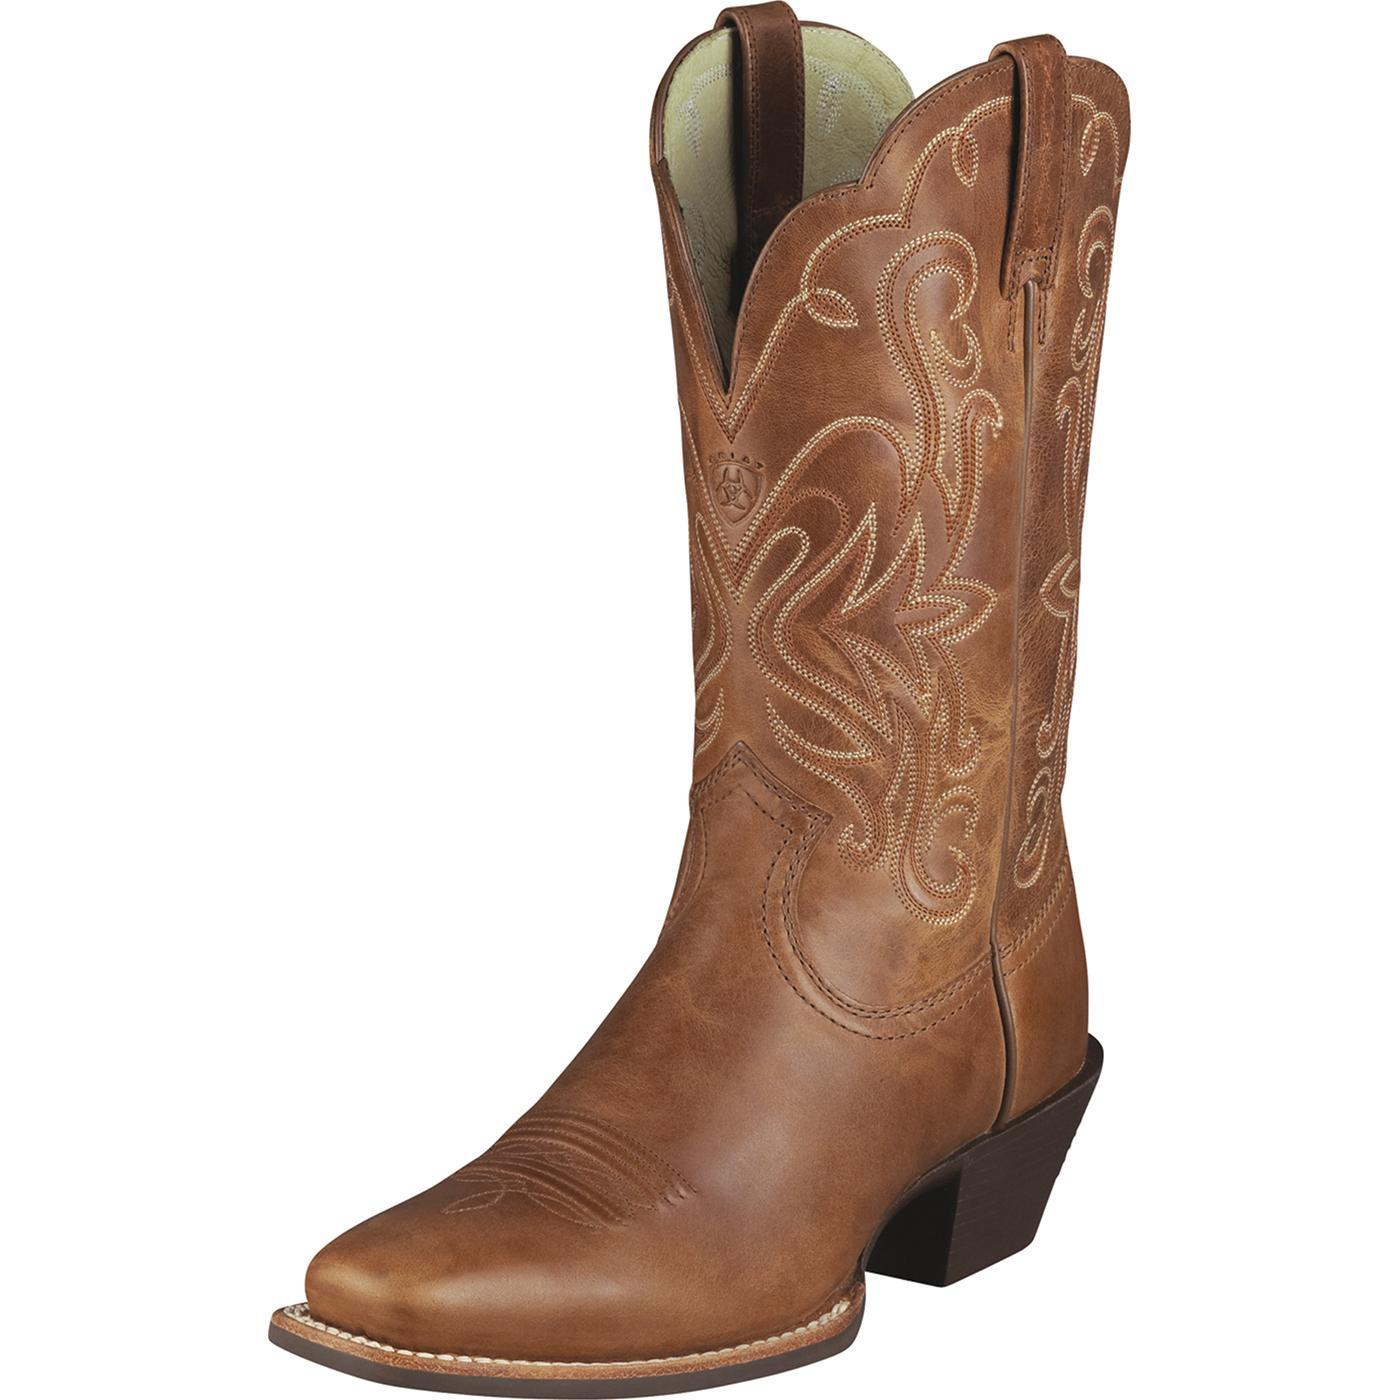 8d43f44f82d Ariat Legend Women's Western Boot